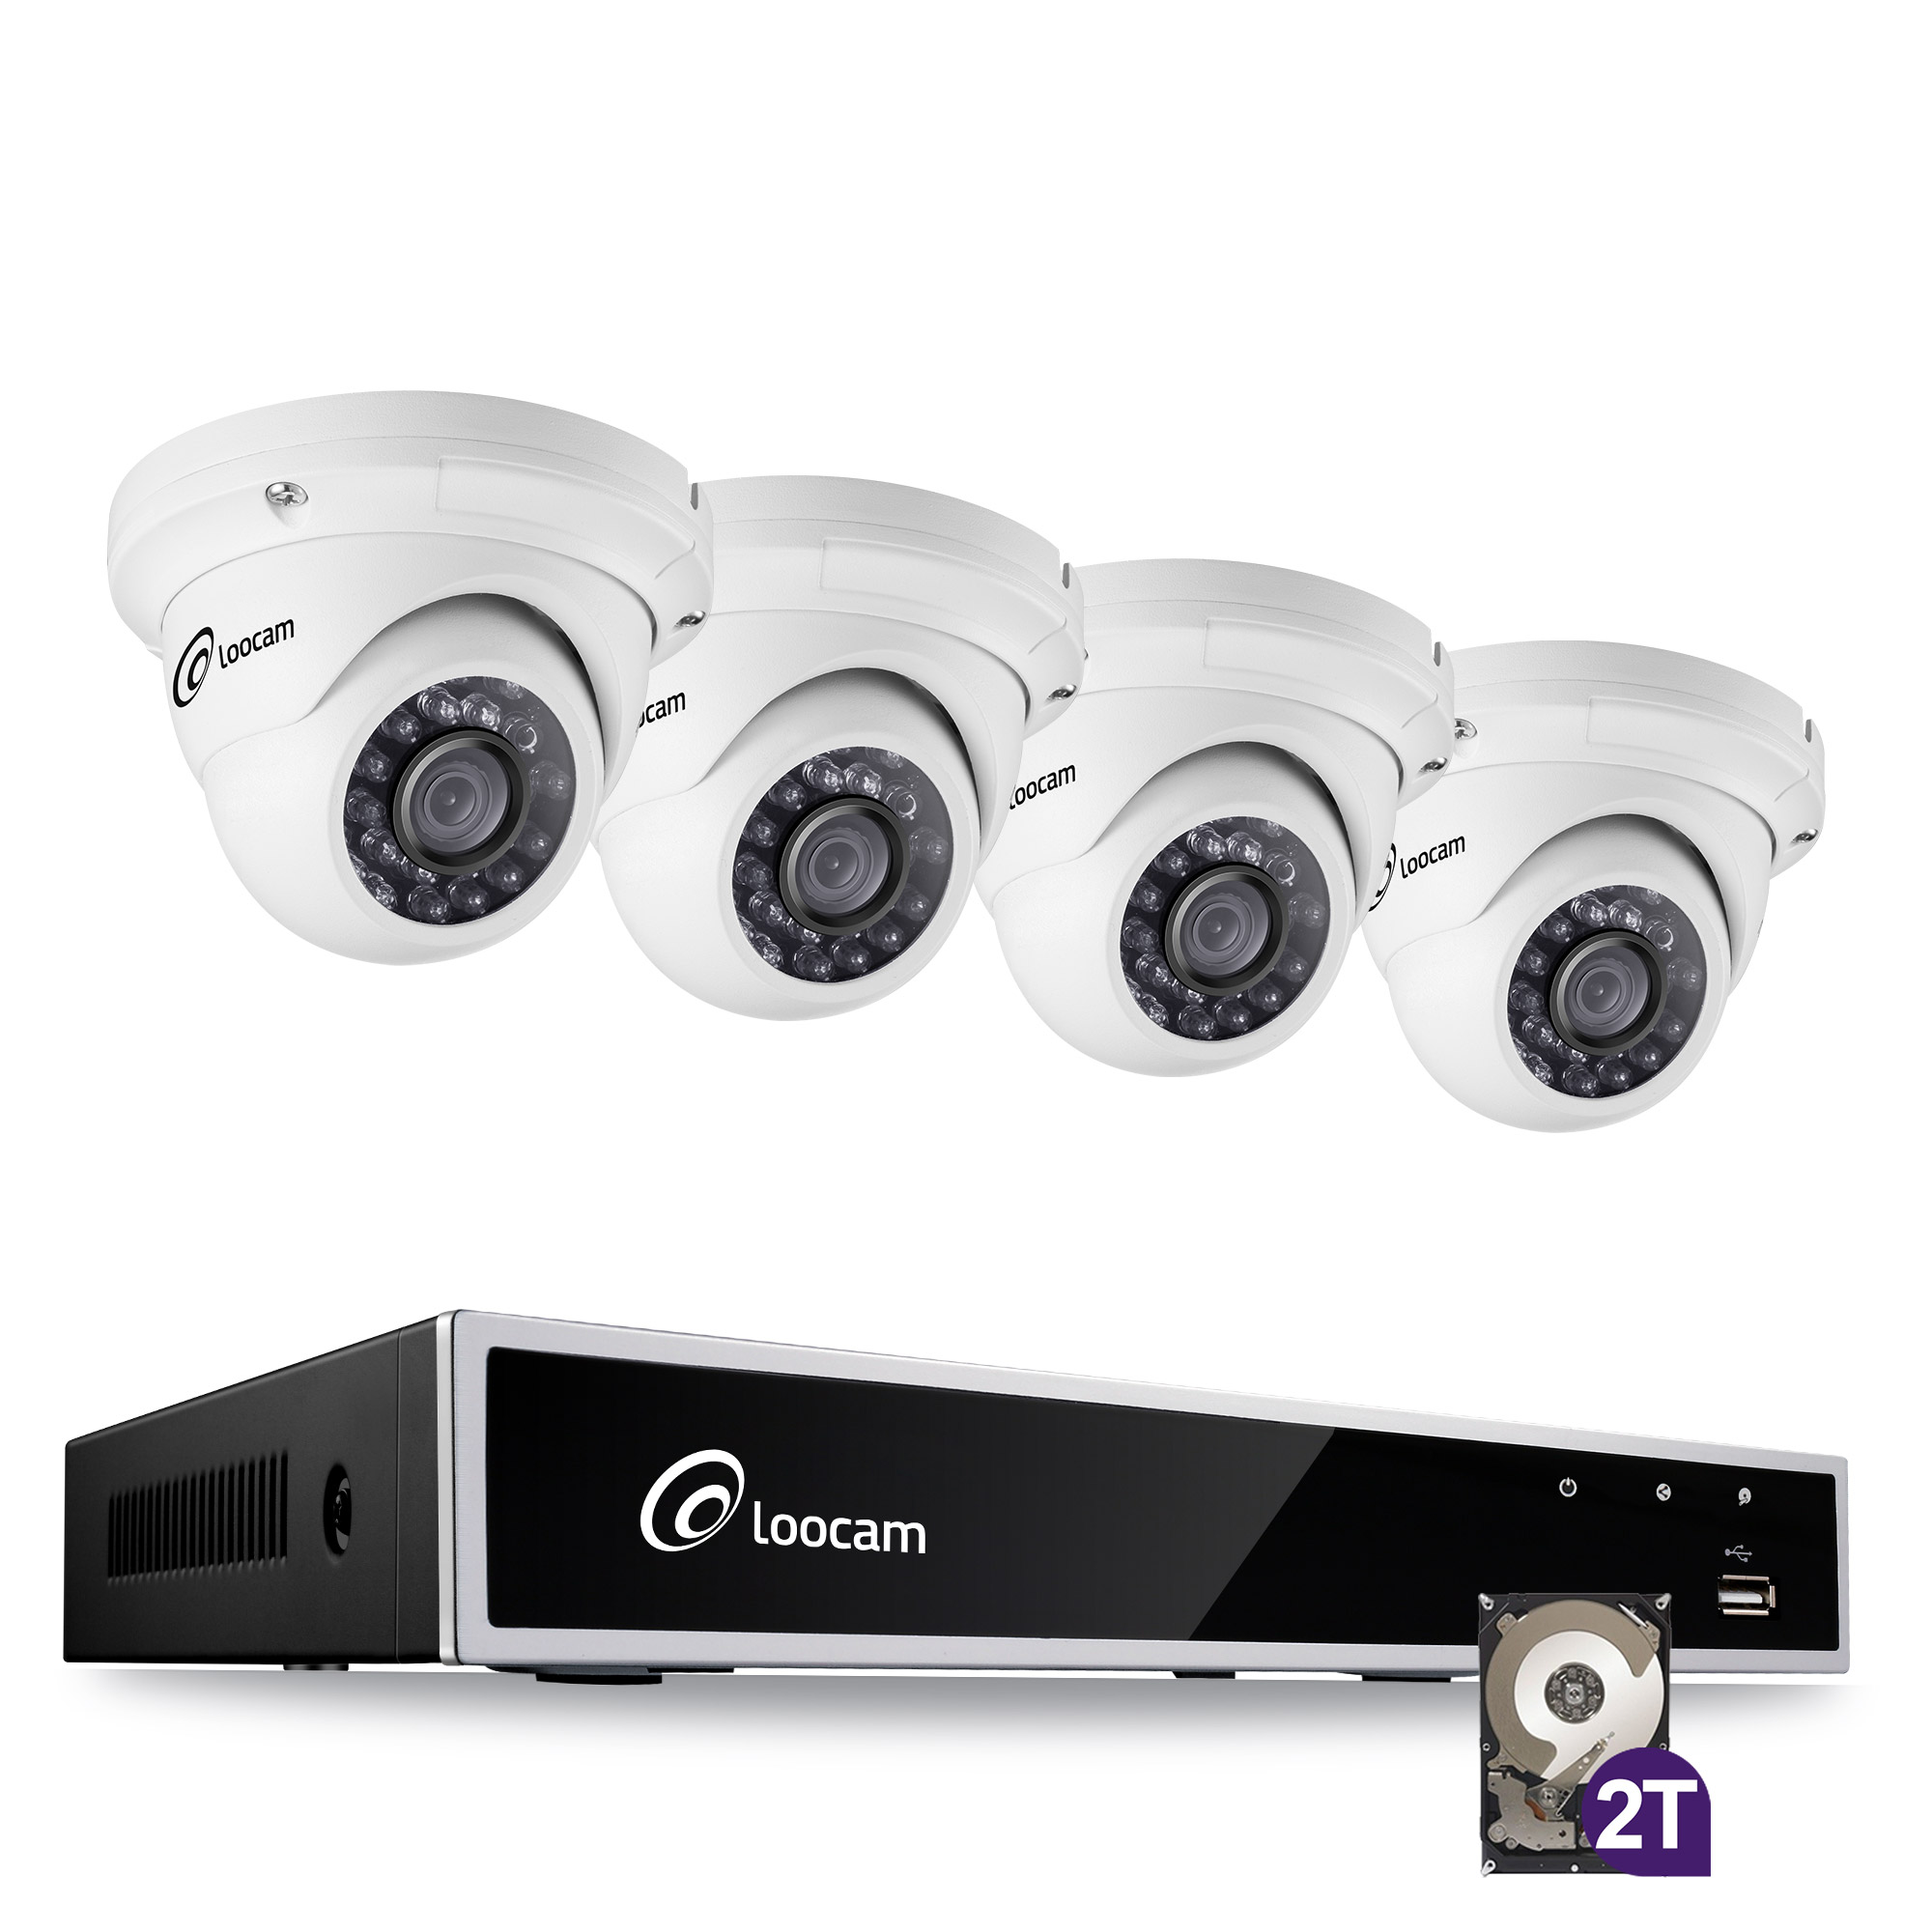 Loocam HD-TVI 1080P 8-Channel Video Security Camera System ,DVR Surveillance Camera Kit With 4 PCS 2.0MP Dome Cameras,Indoor /Outdoor IR Weatherproof, 150FT Night Vision with IR Cut